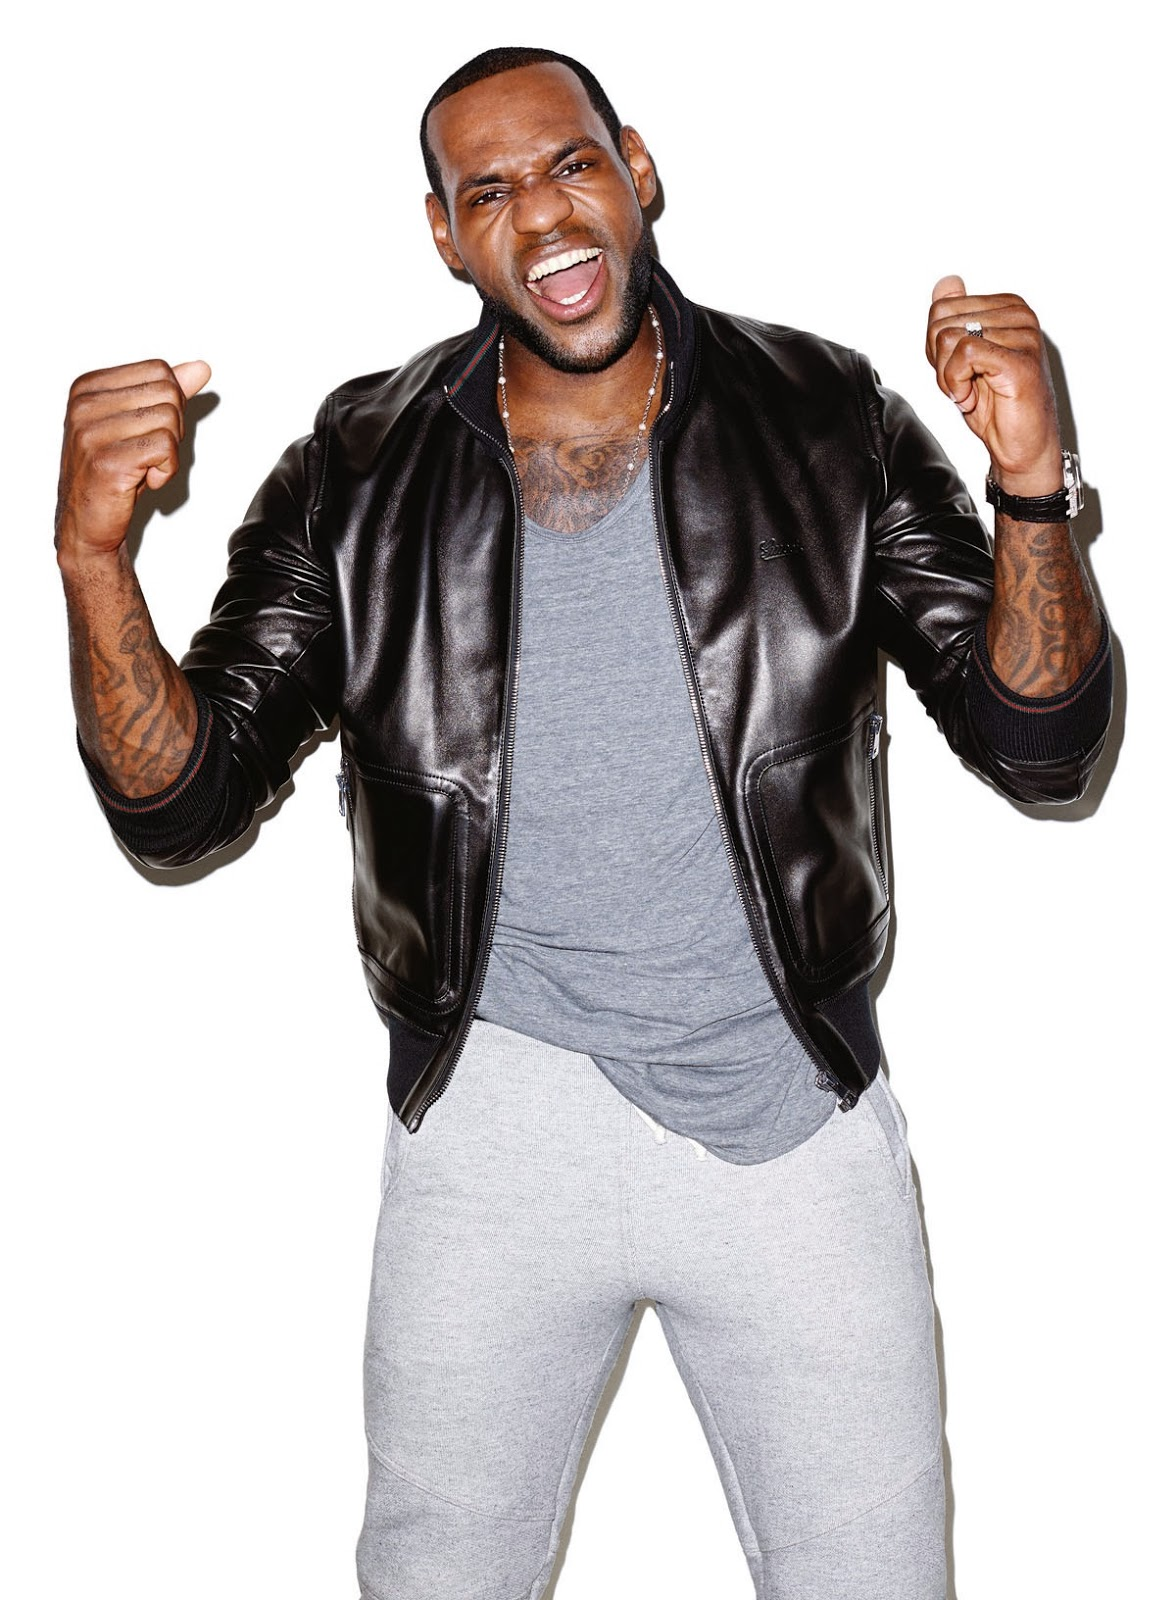 Lebron James Gq >> LEBRON JAMES for March 2014 GQ Cover Feature | Marcus Paul